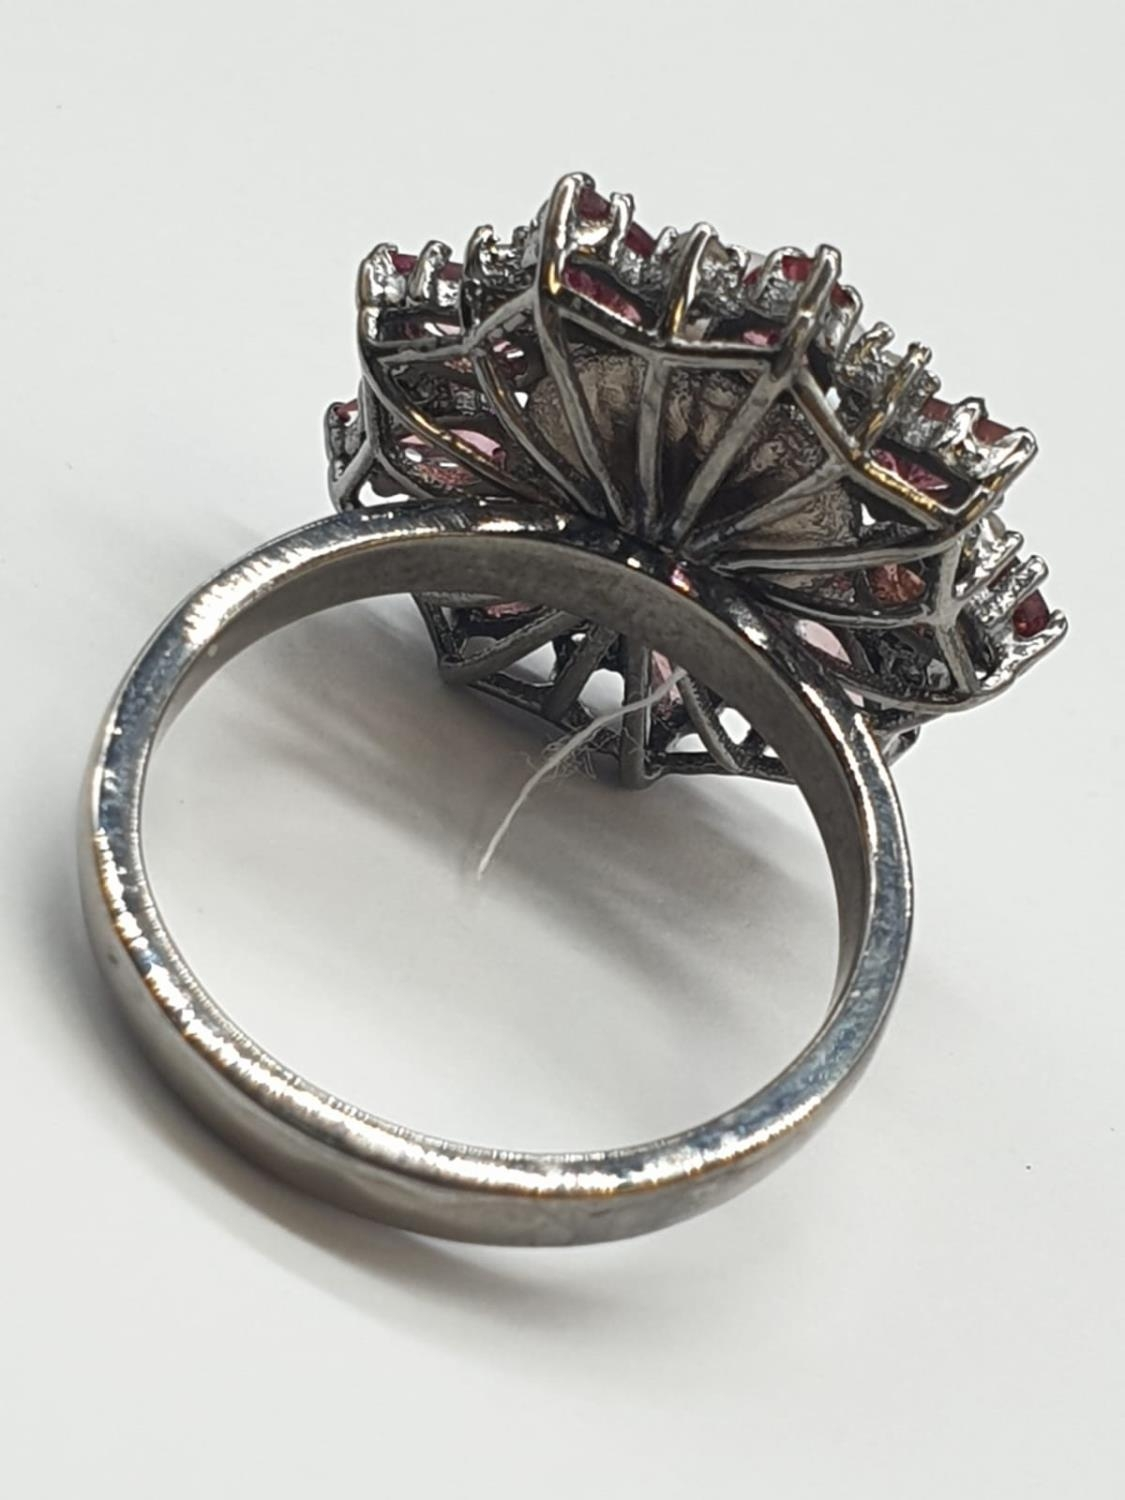 4.40 Cts Pearl & 2.35 Cts Pink Tourmalines set inside a 925 Blackened silver ring. With 0.20 Cts - Image 4 of 7